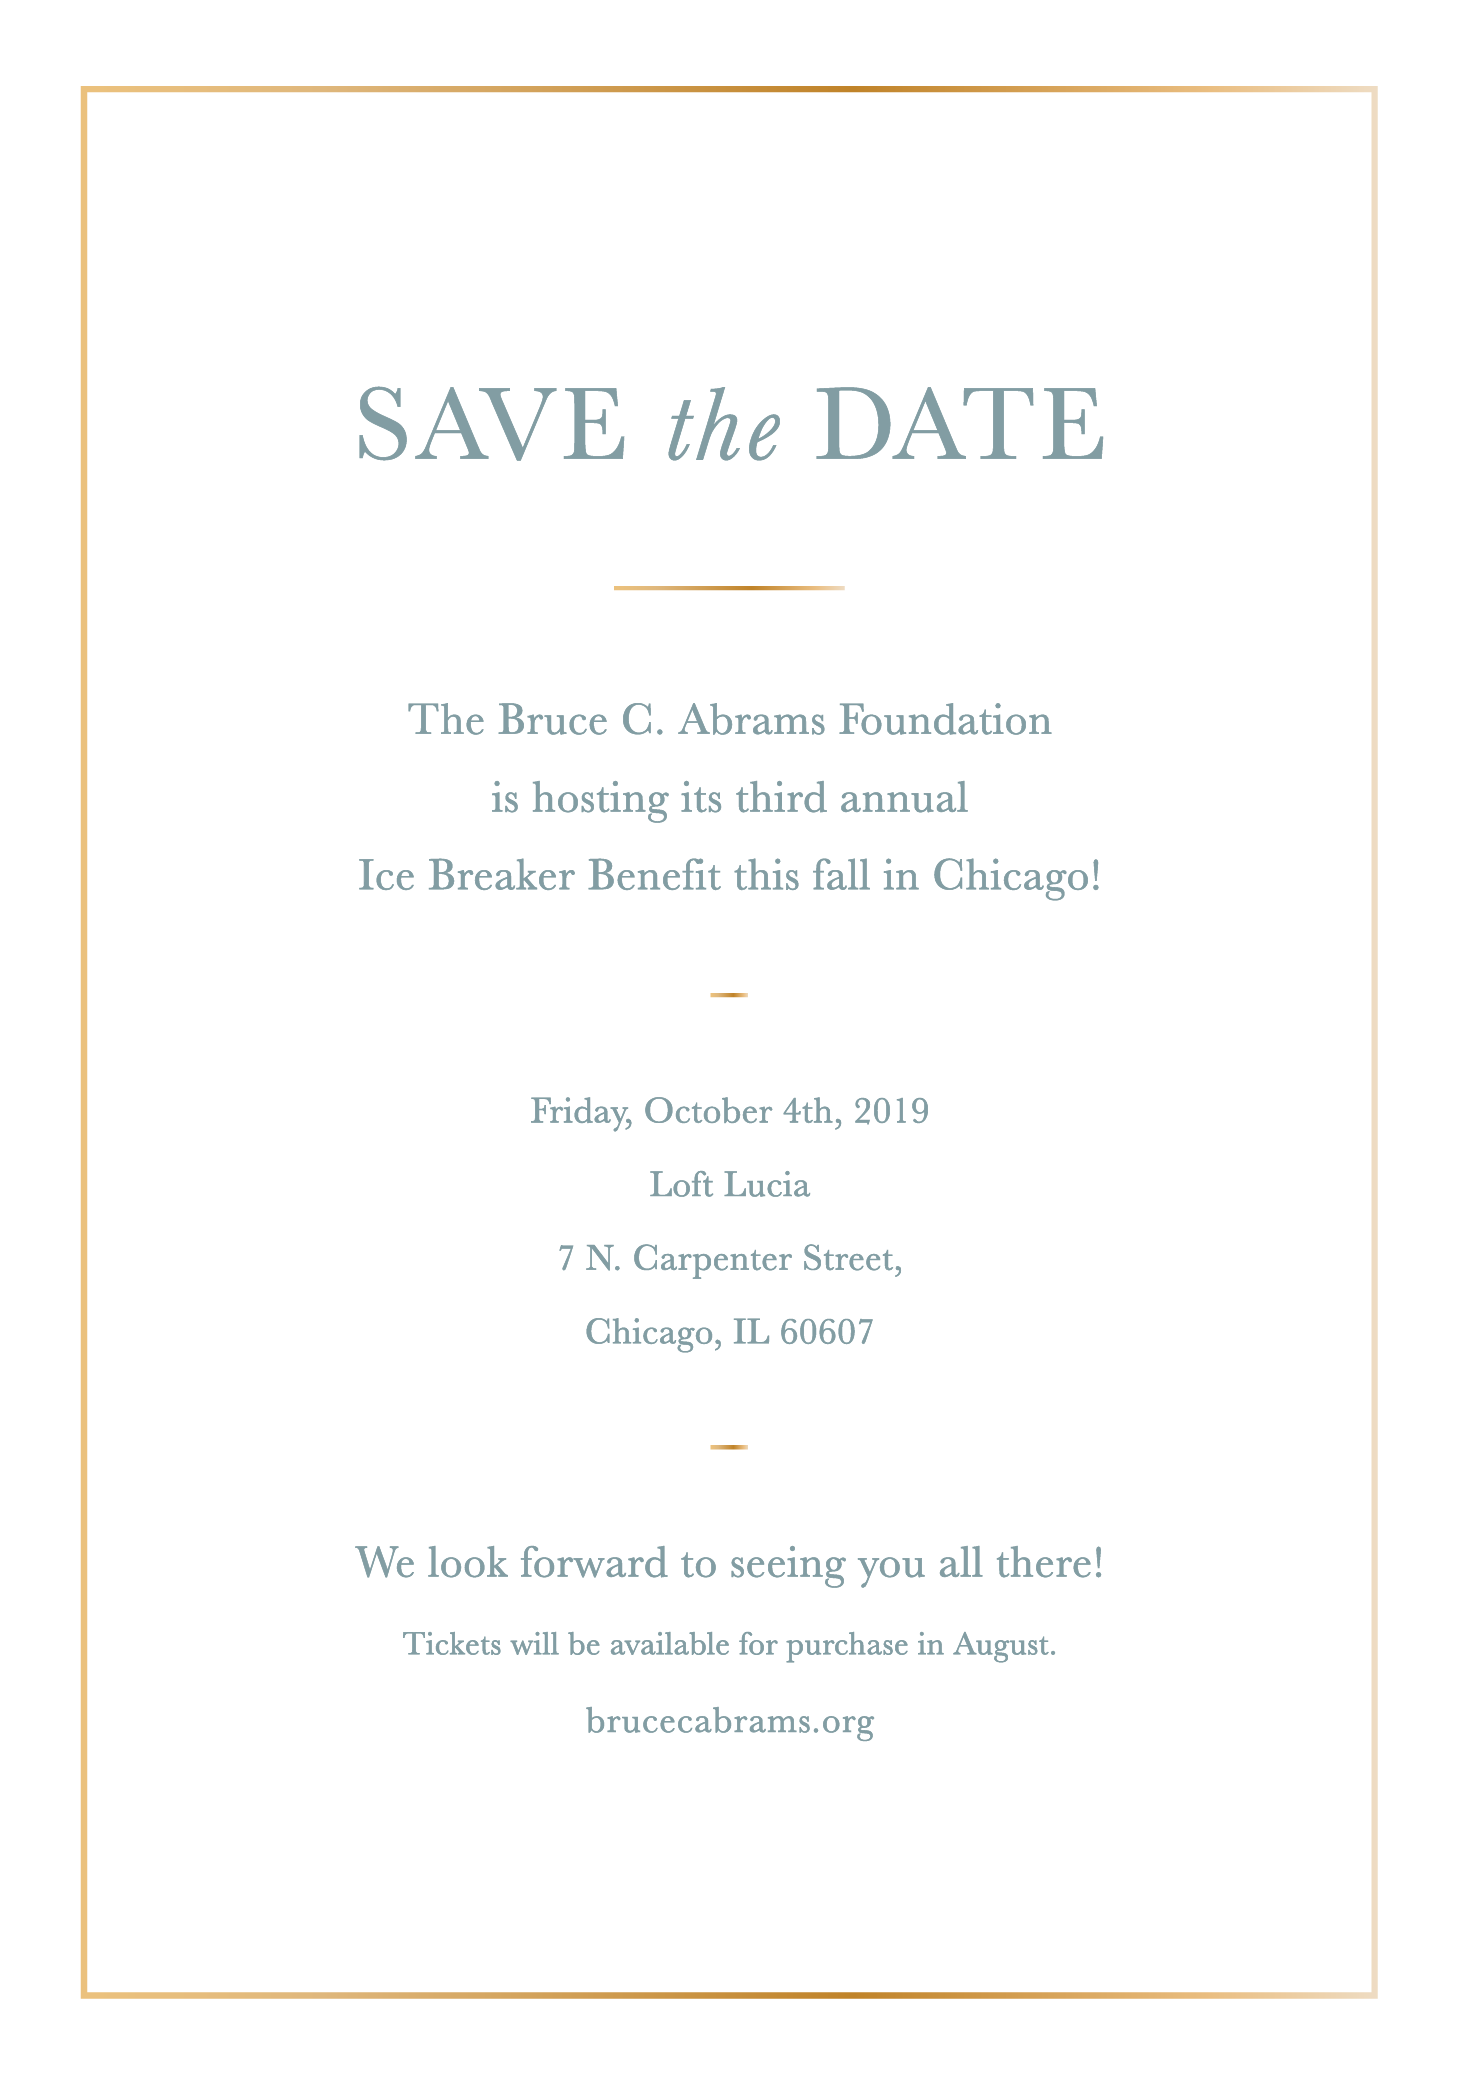 BruceAbrams-Save-The-Date.png